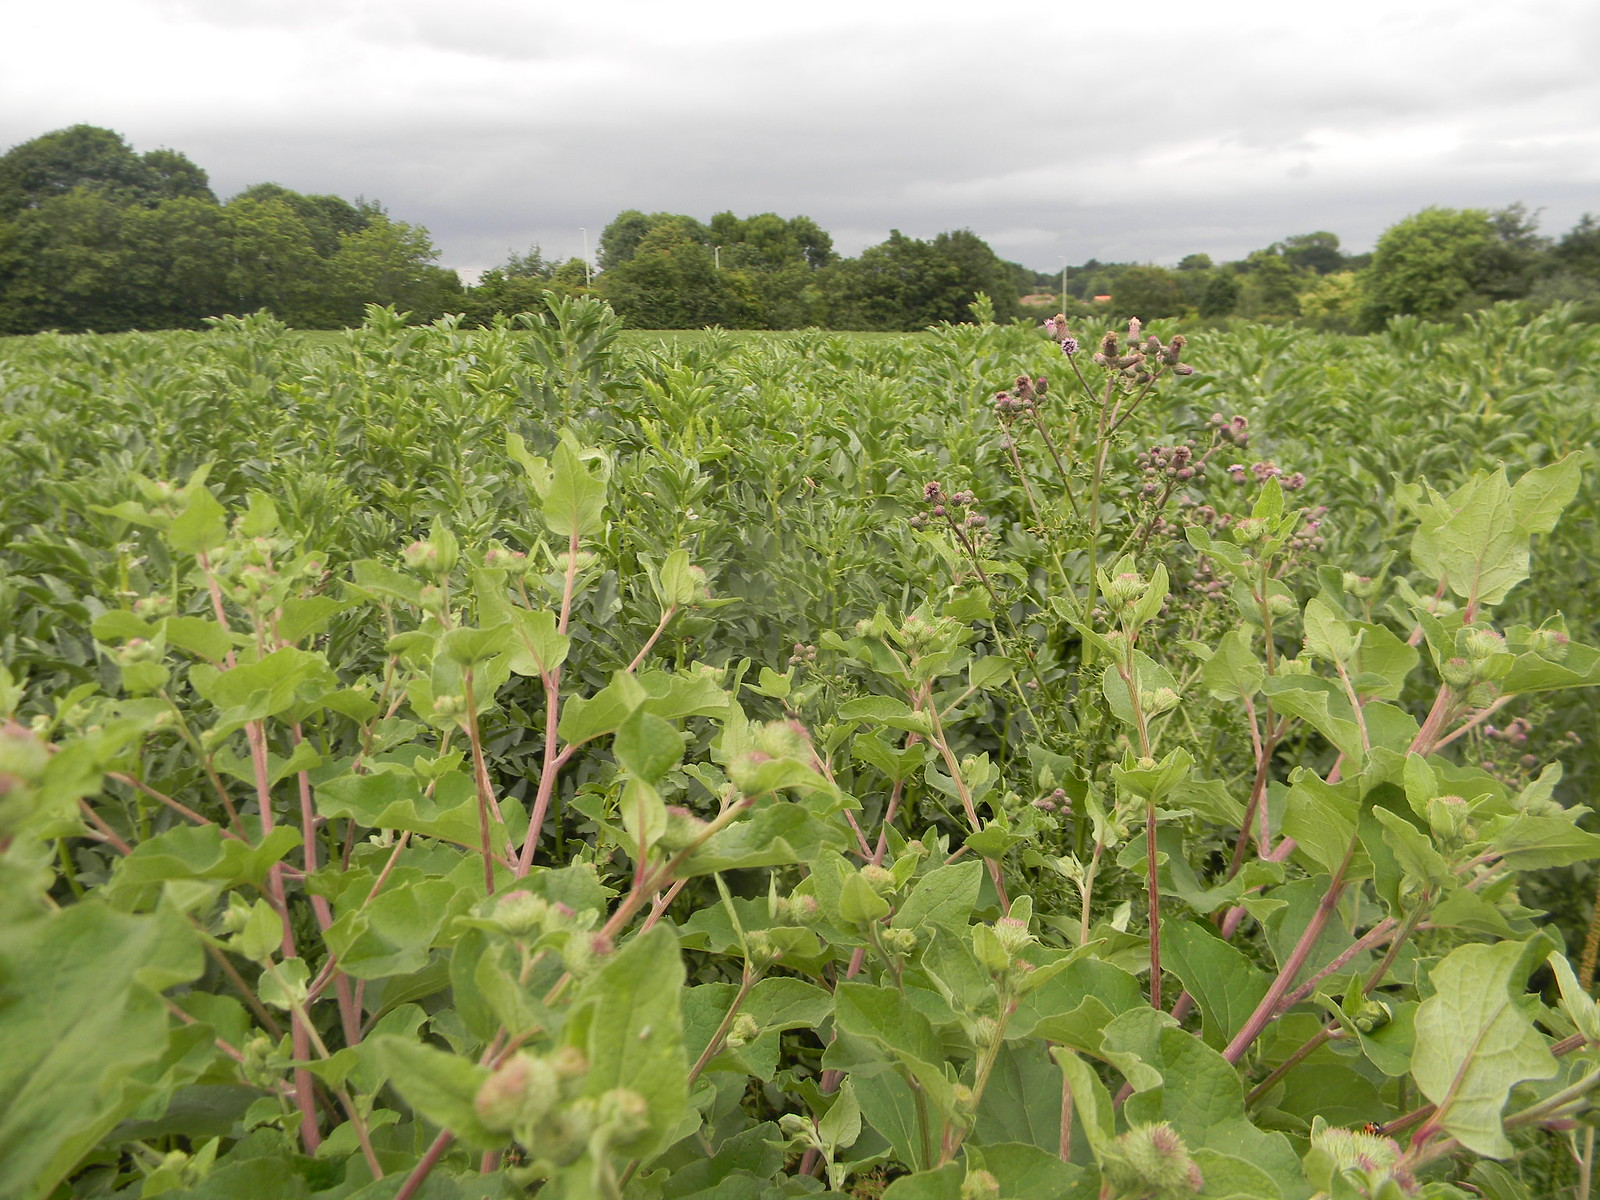 Burdock Sawbridgeworth to Bishops Stortford